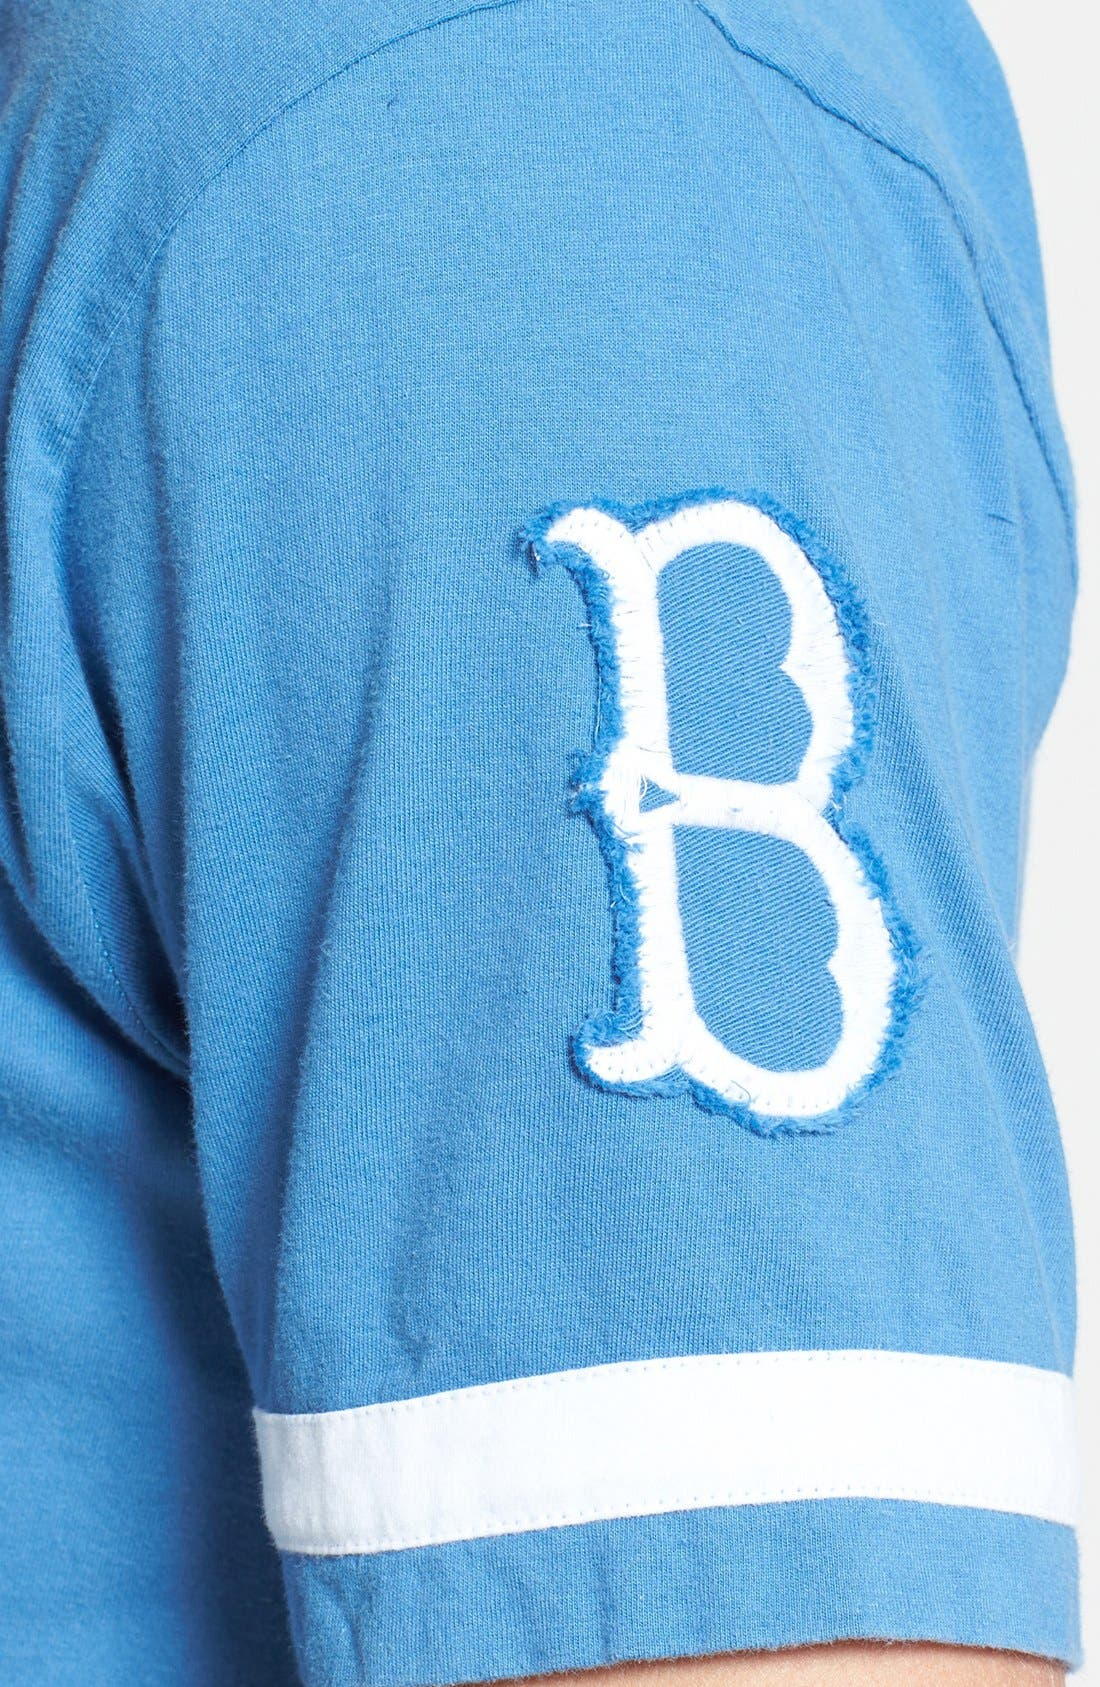 RED JACKET,                             'Brooklyn Dodgers - Remote Control' T-Shirt,                             Alternate thumbnail 3, color,                             450